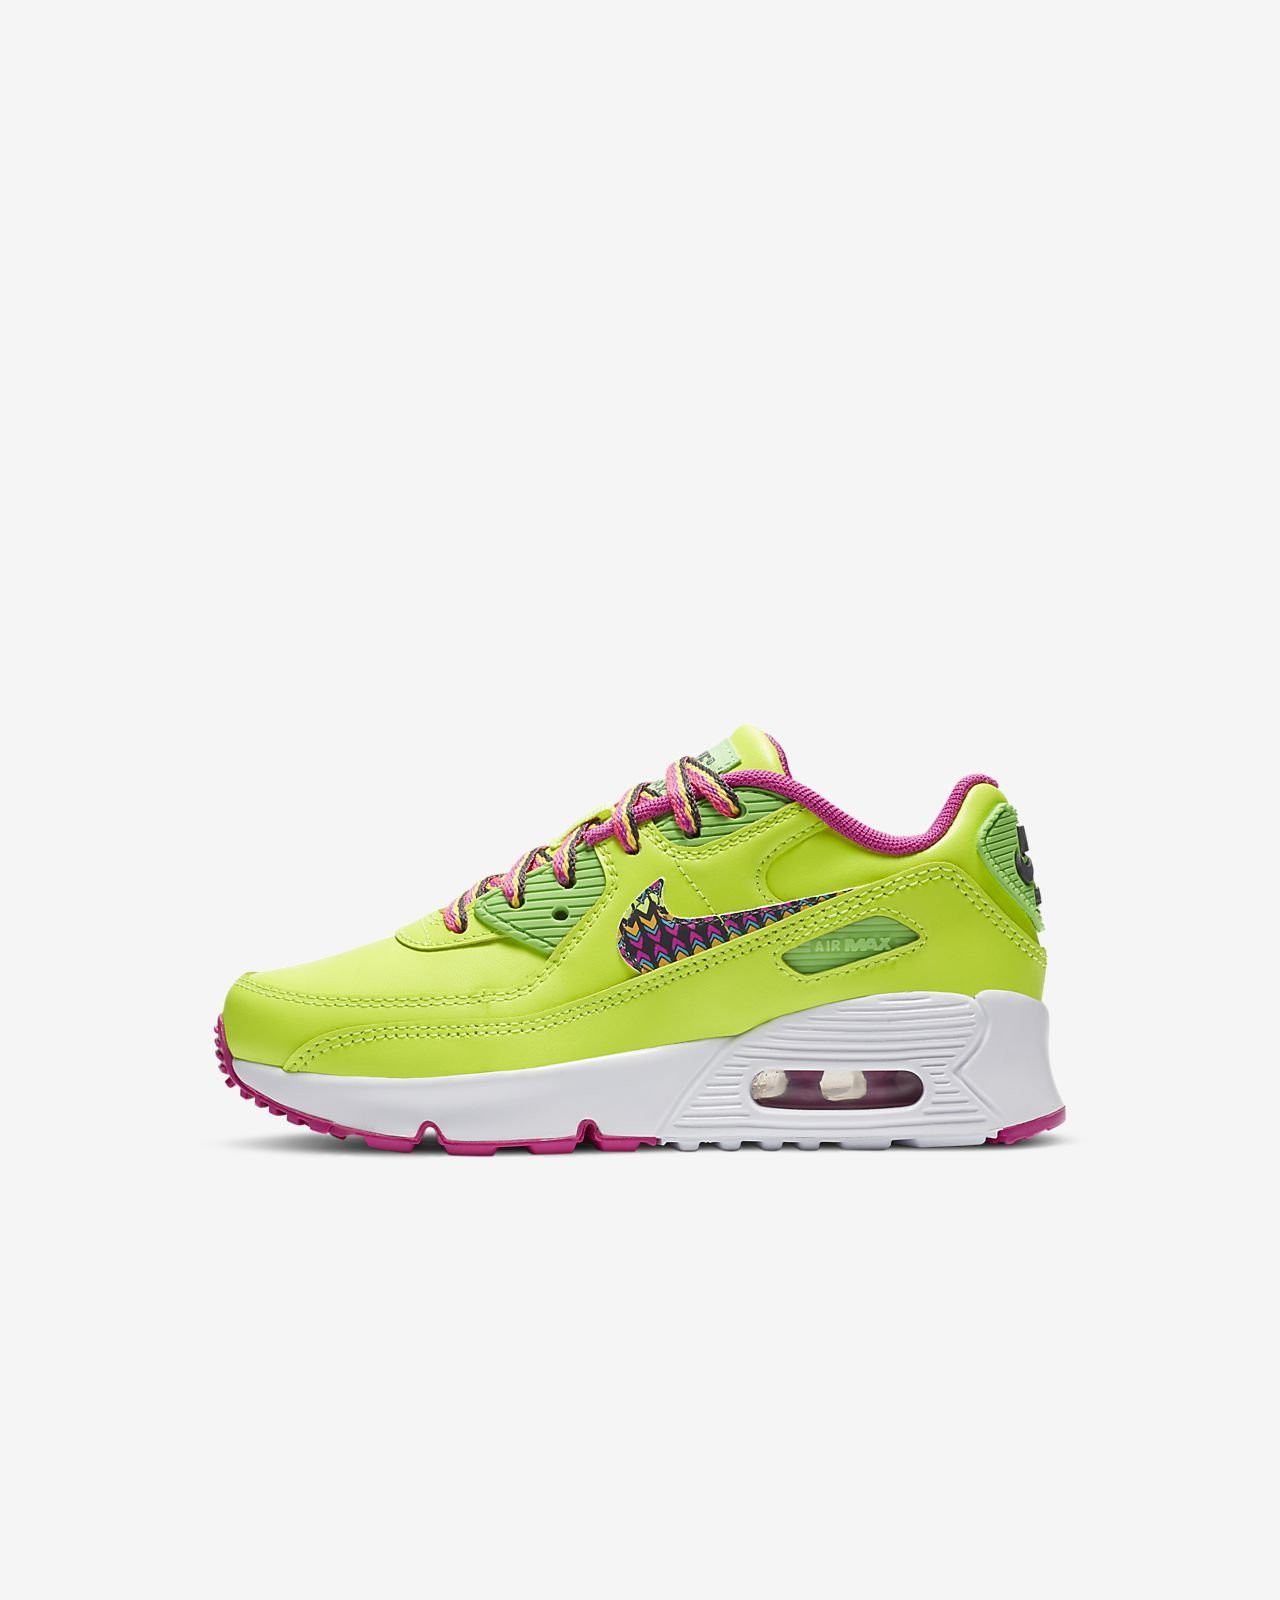 Nike Air Max 90 Leather Little Kids' Shoe